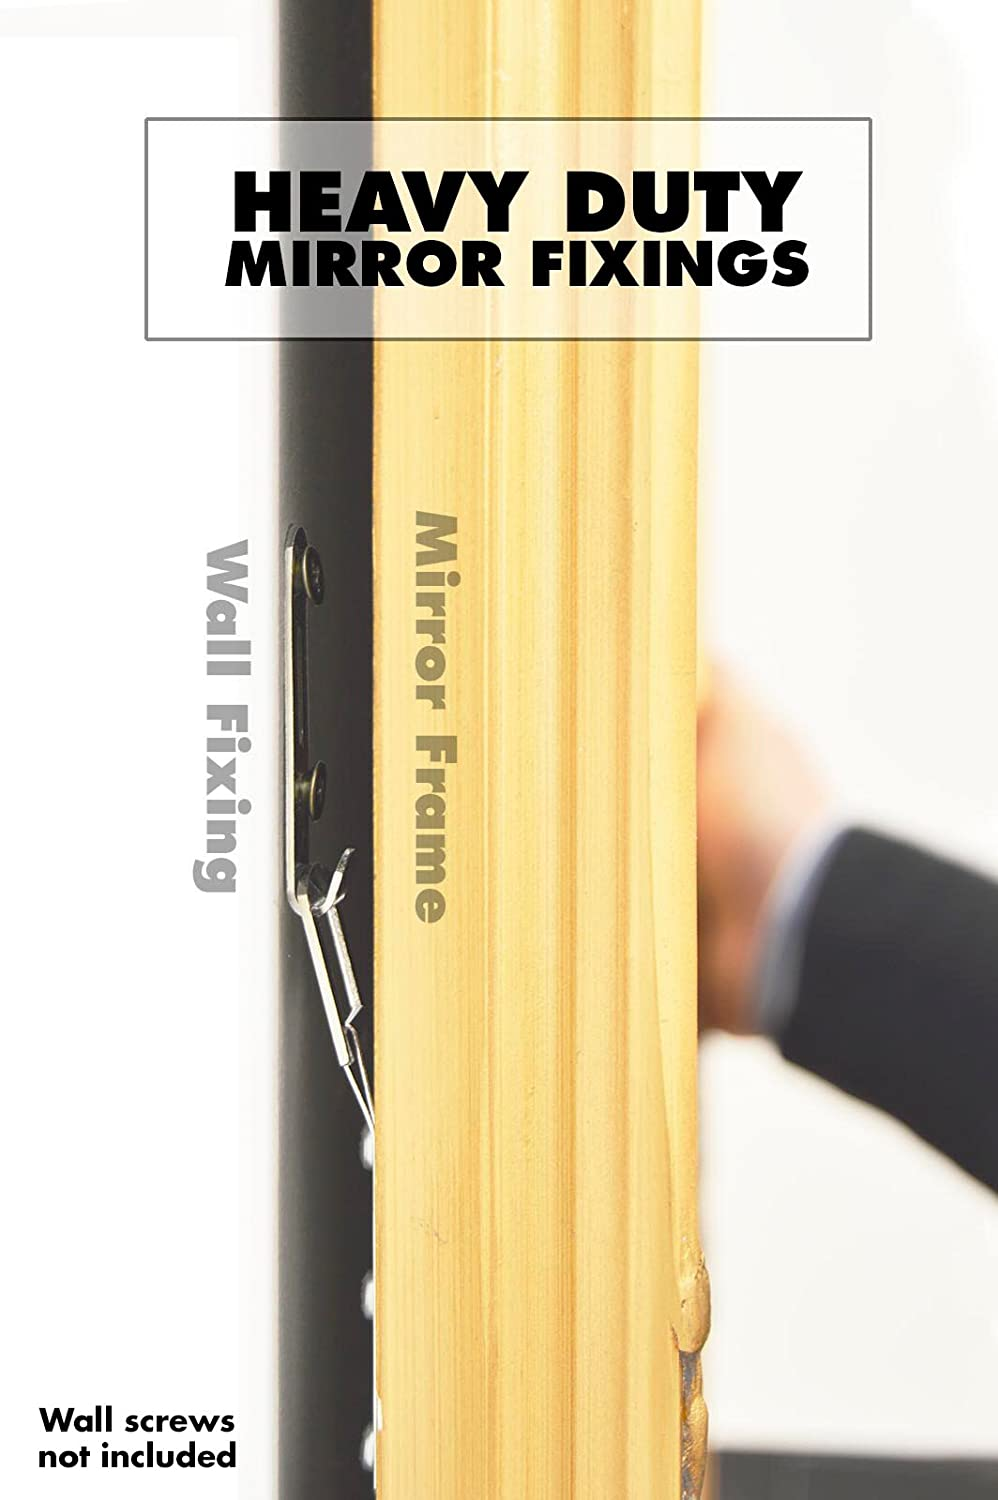 Heavy duty mirror fixings hooks straps fittings for a heavy duty mirror fixings hooks straps fittings for a plasterboard wall by mirroroutlet amazon kitchen home amipublicfo Choice Image